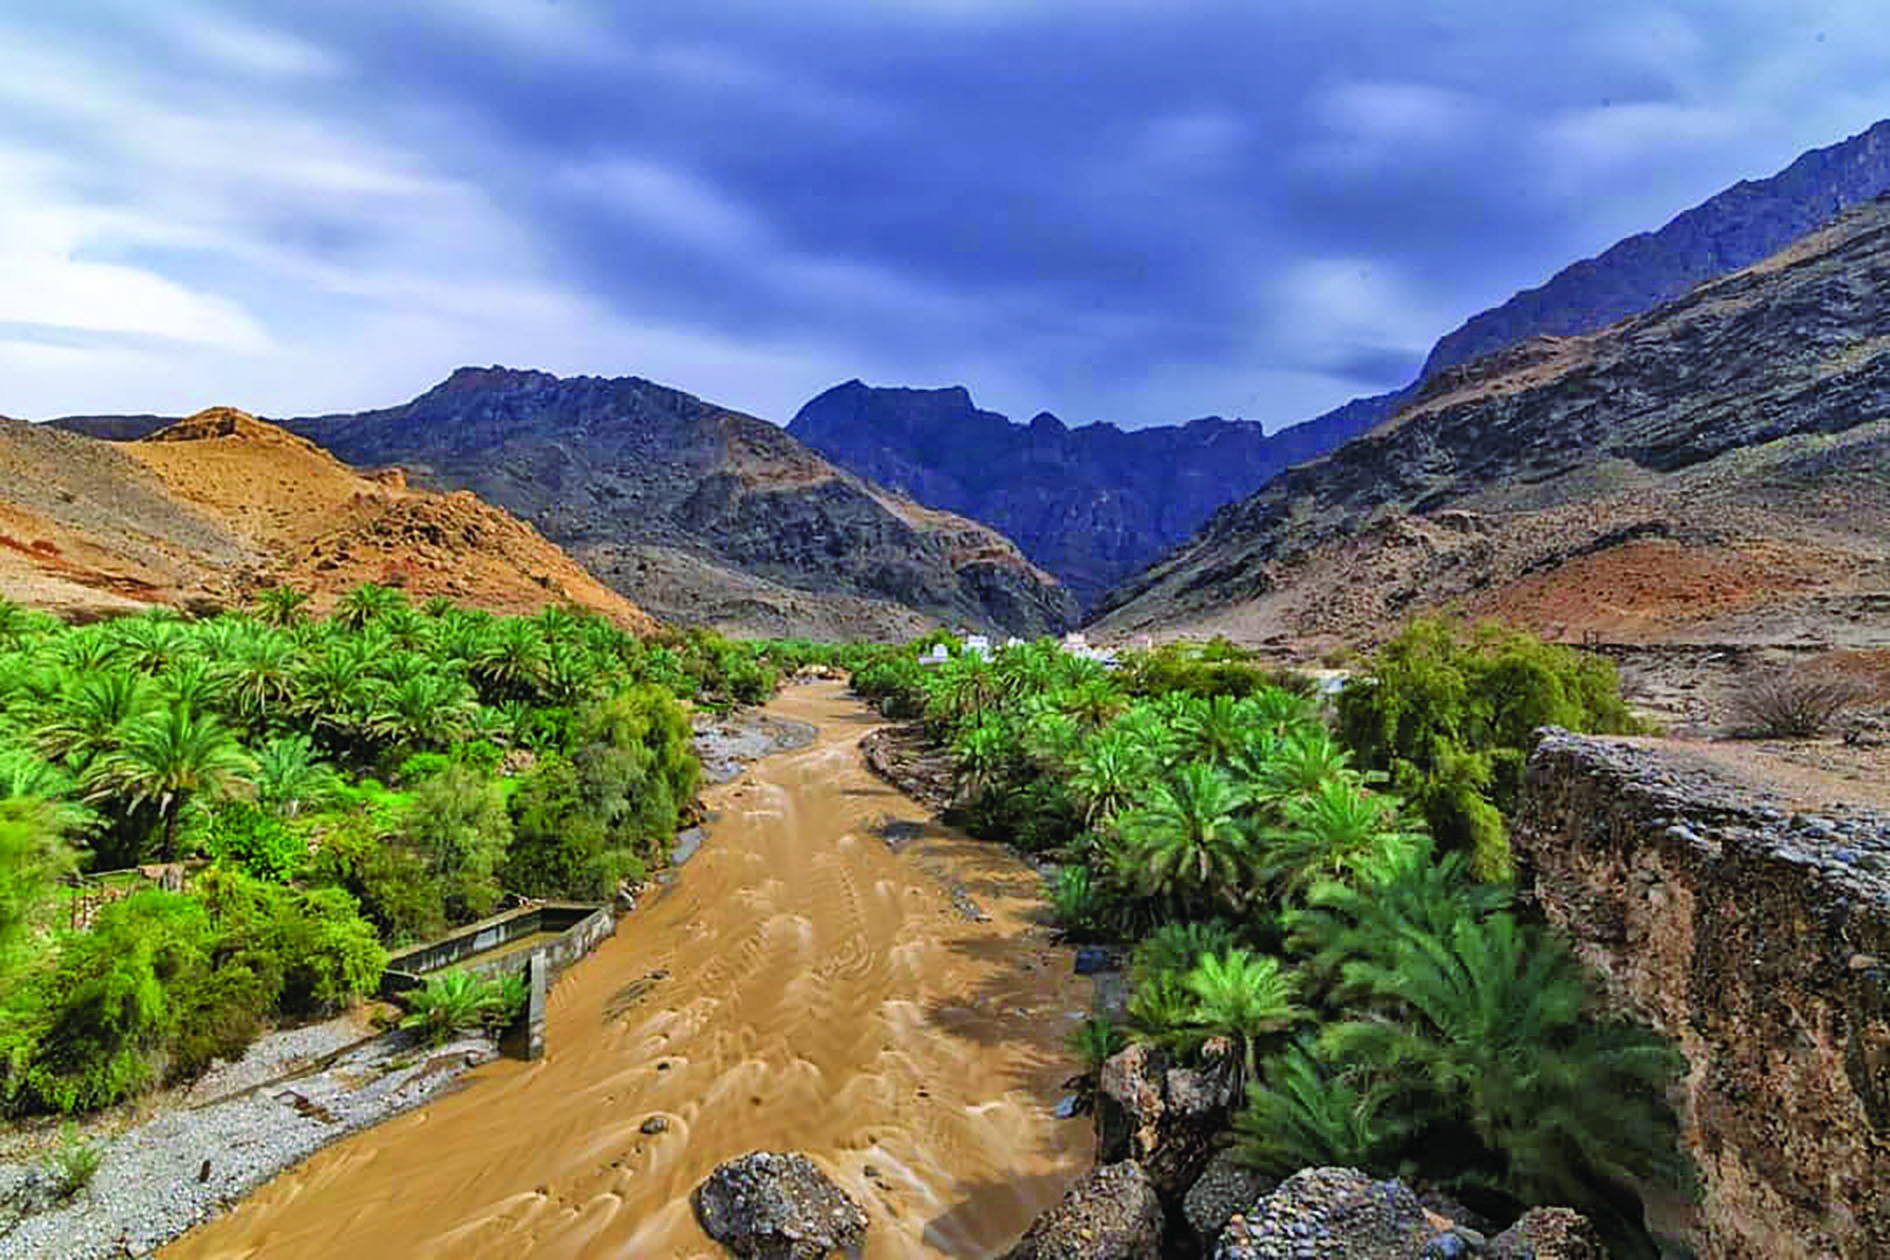 In pictures: Greener, cooler Oman loved by one and all